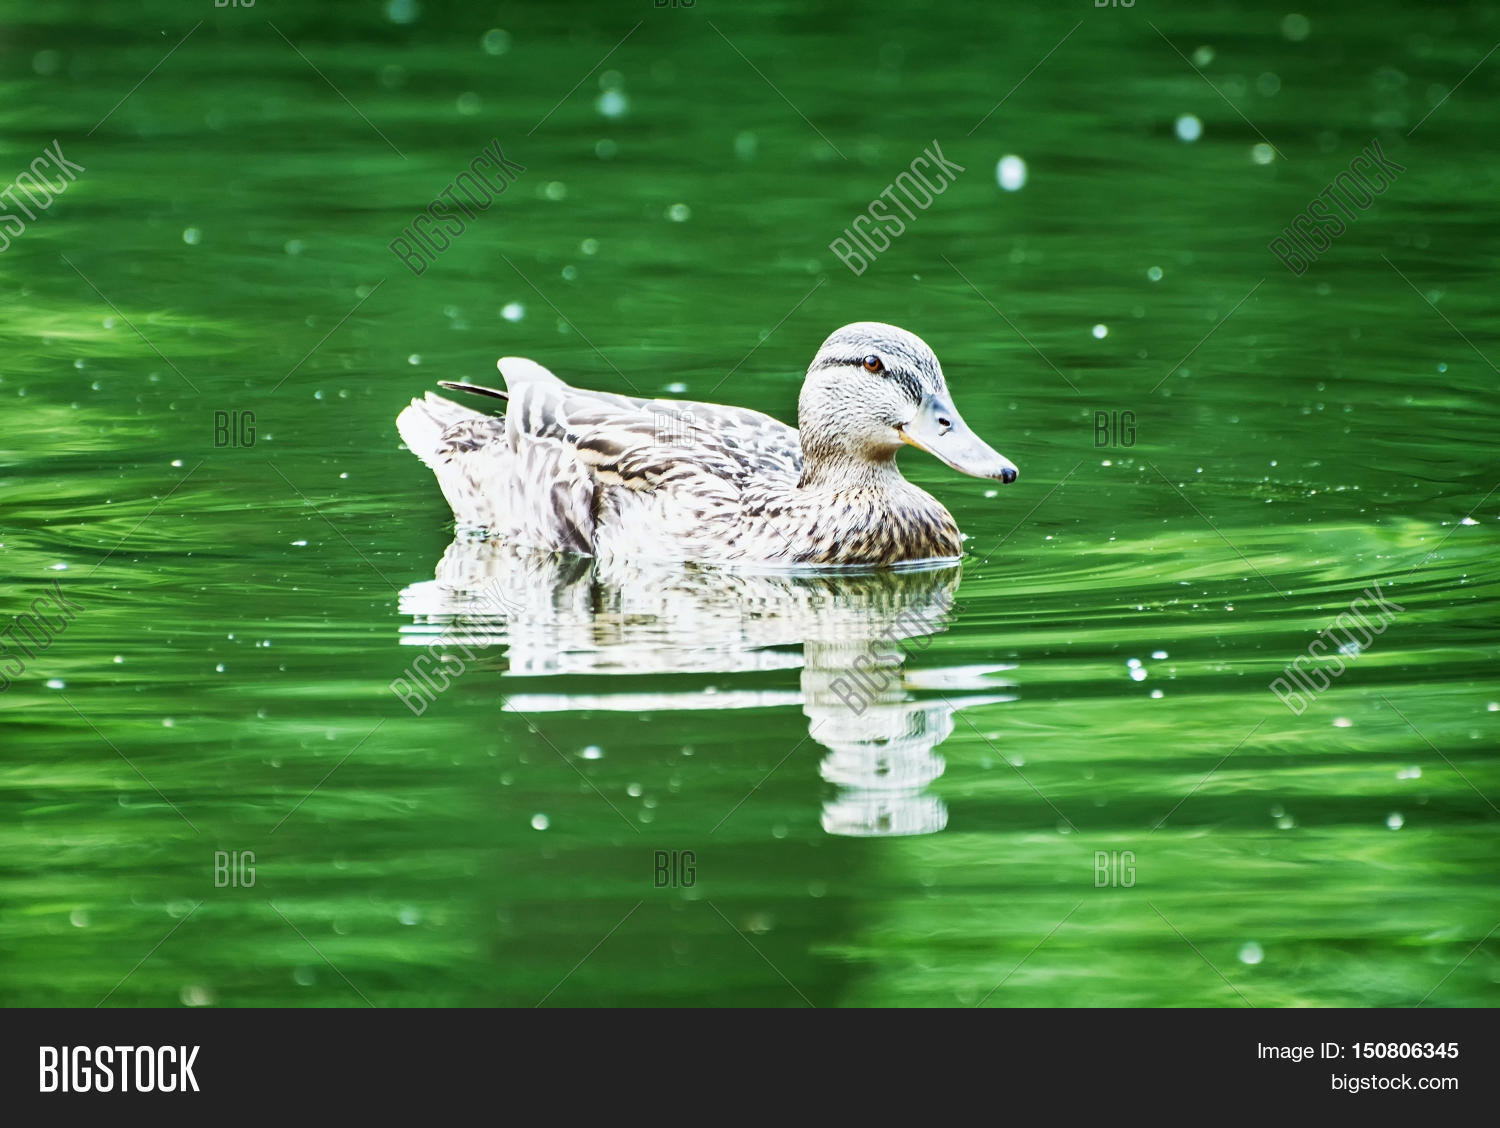 Mallard duck green pond water image photo bigstock for Green pond water